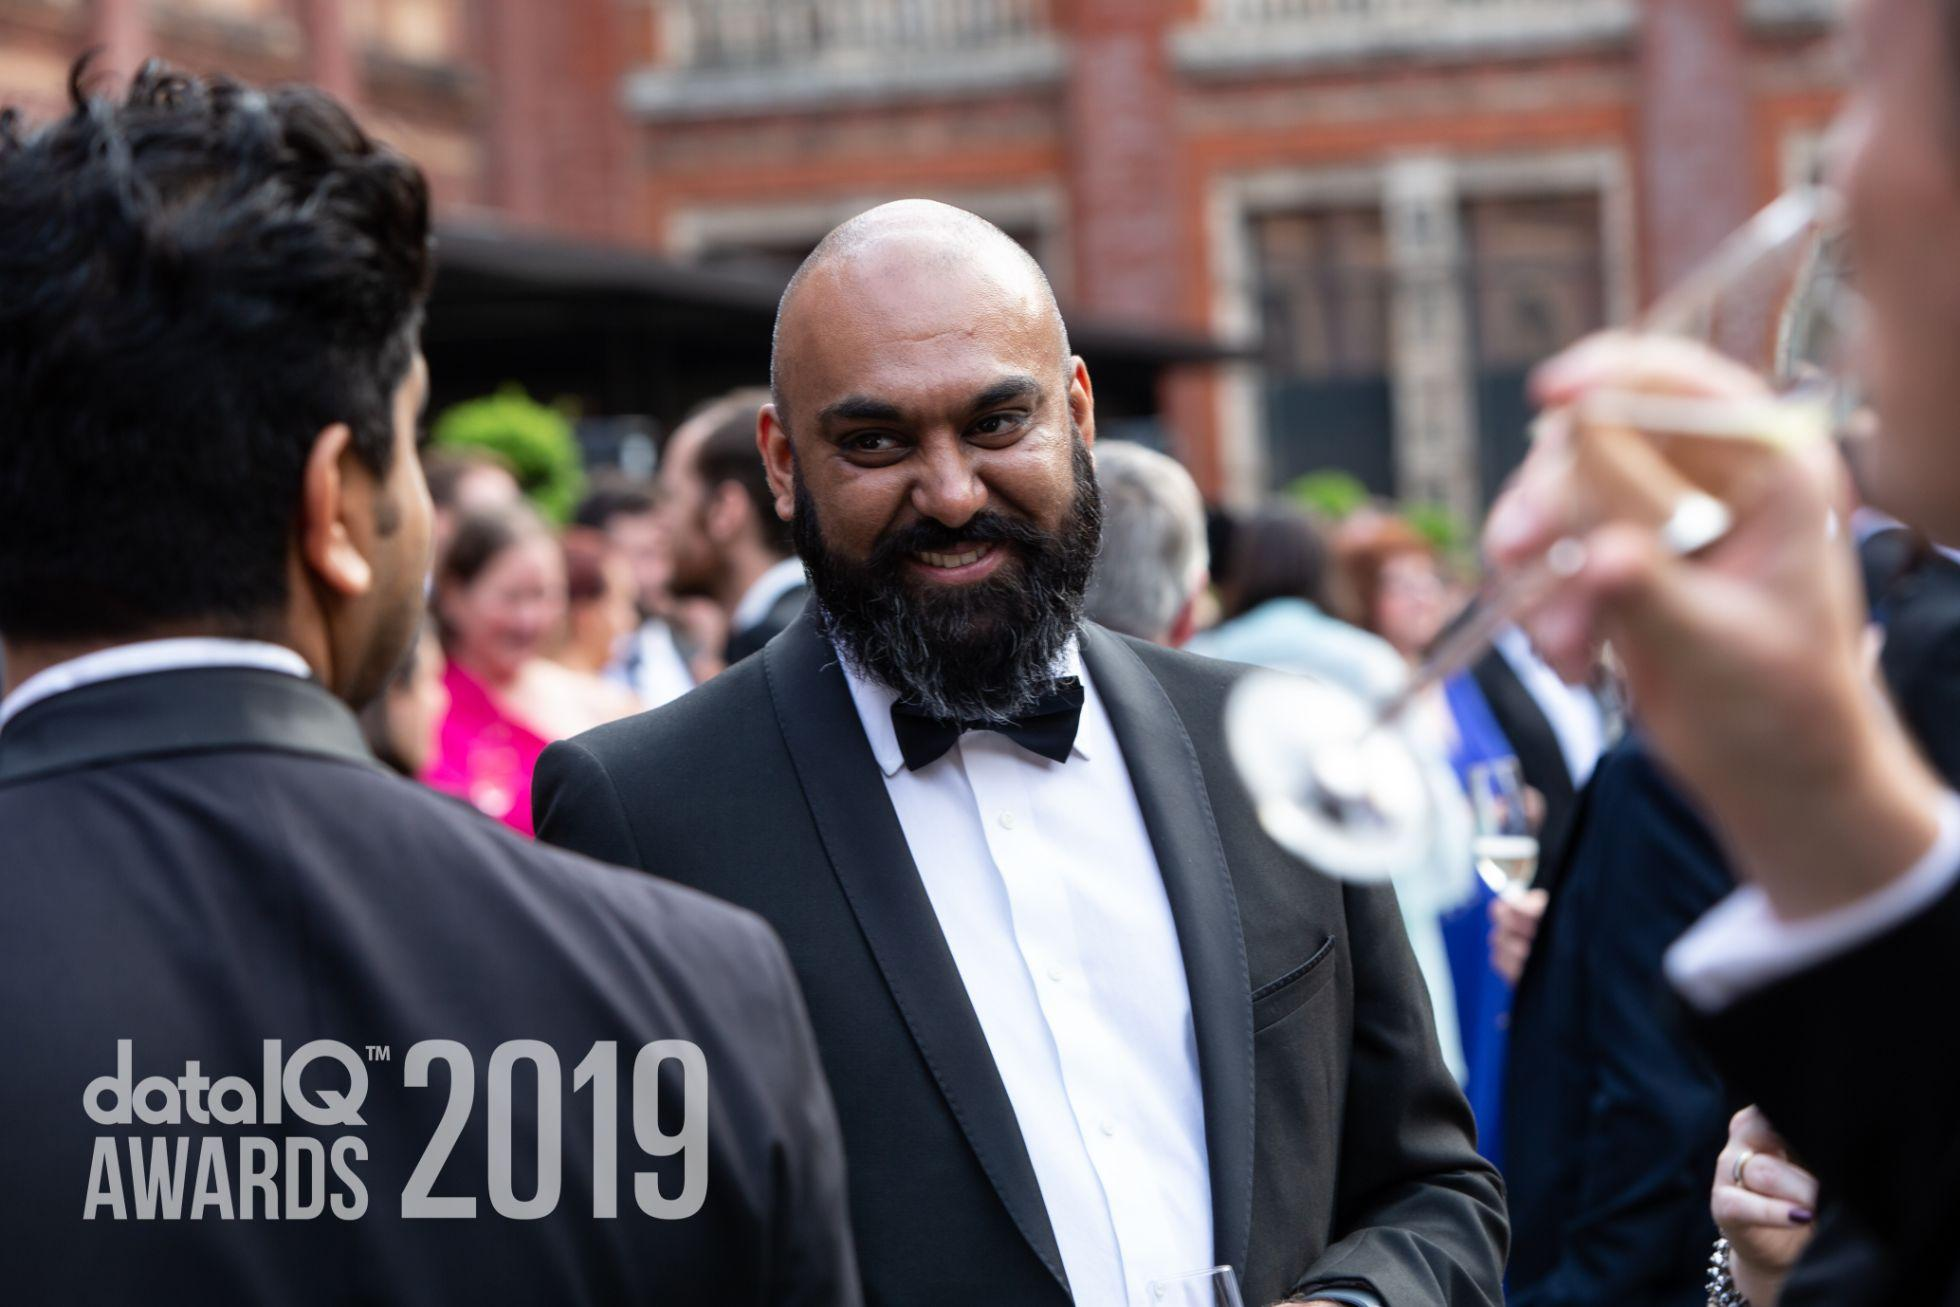 Awards 2019 Image 95